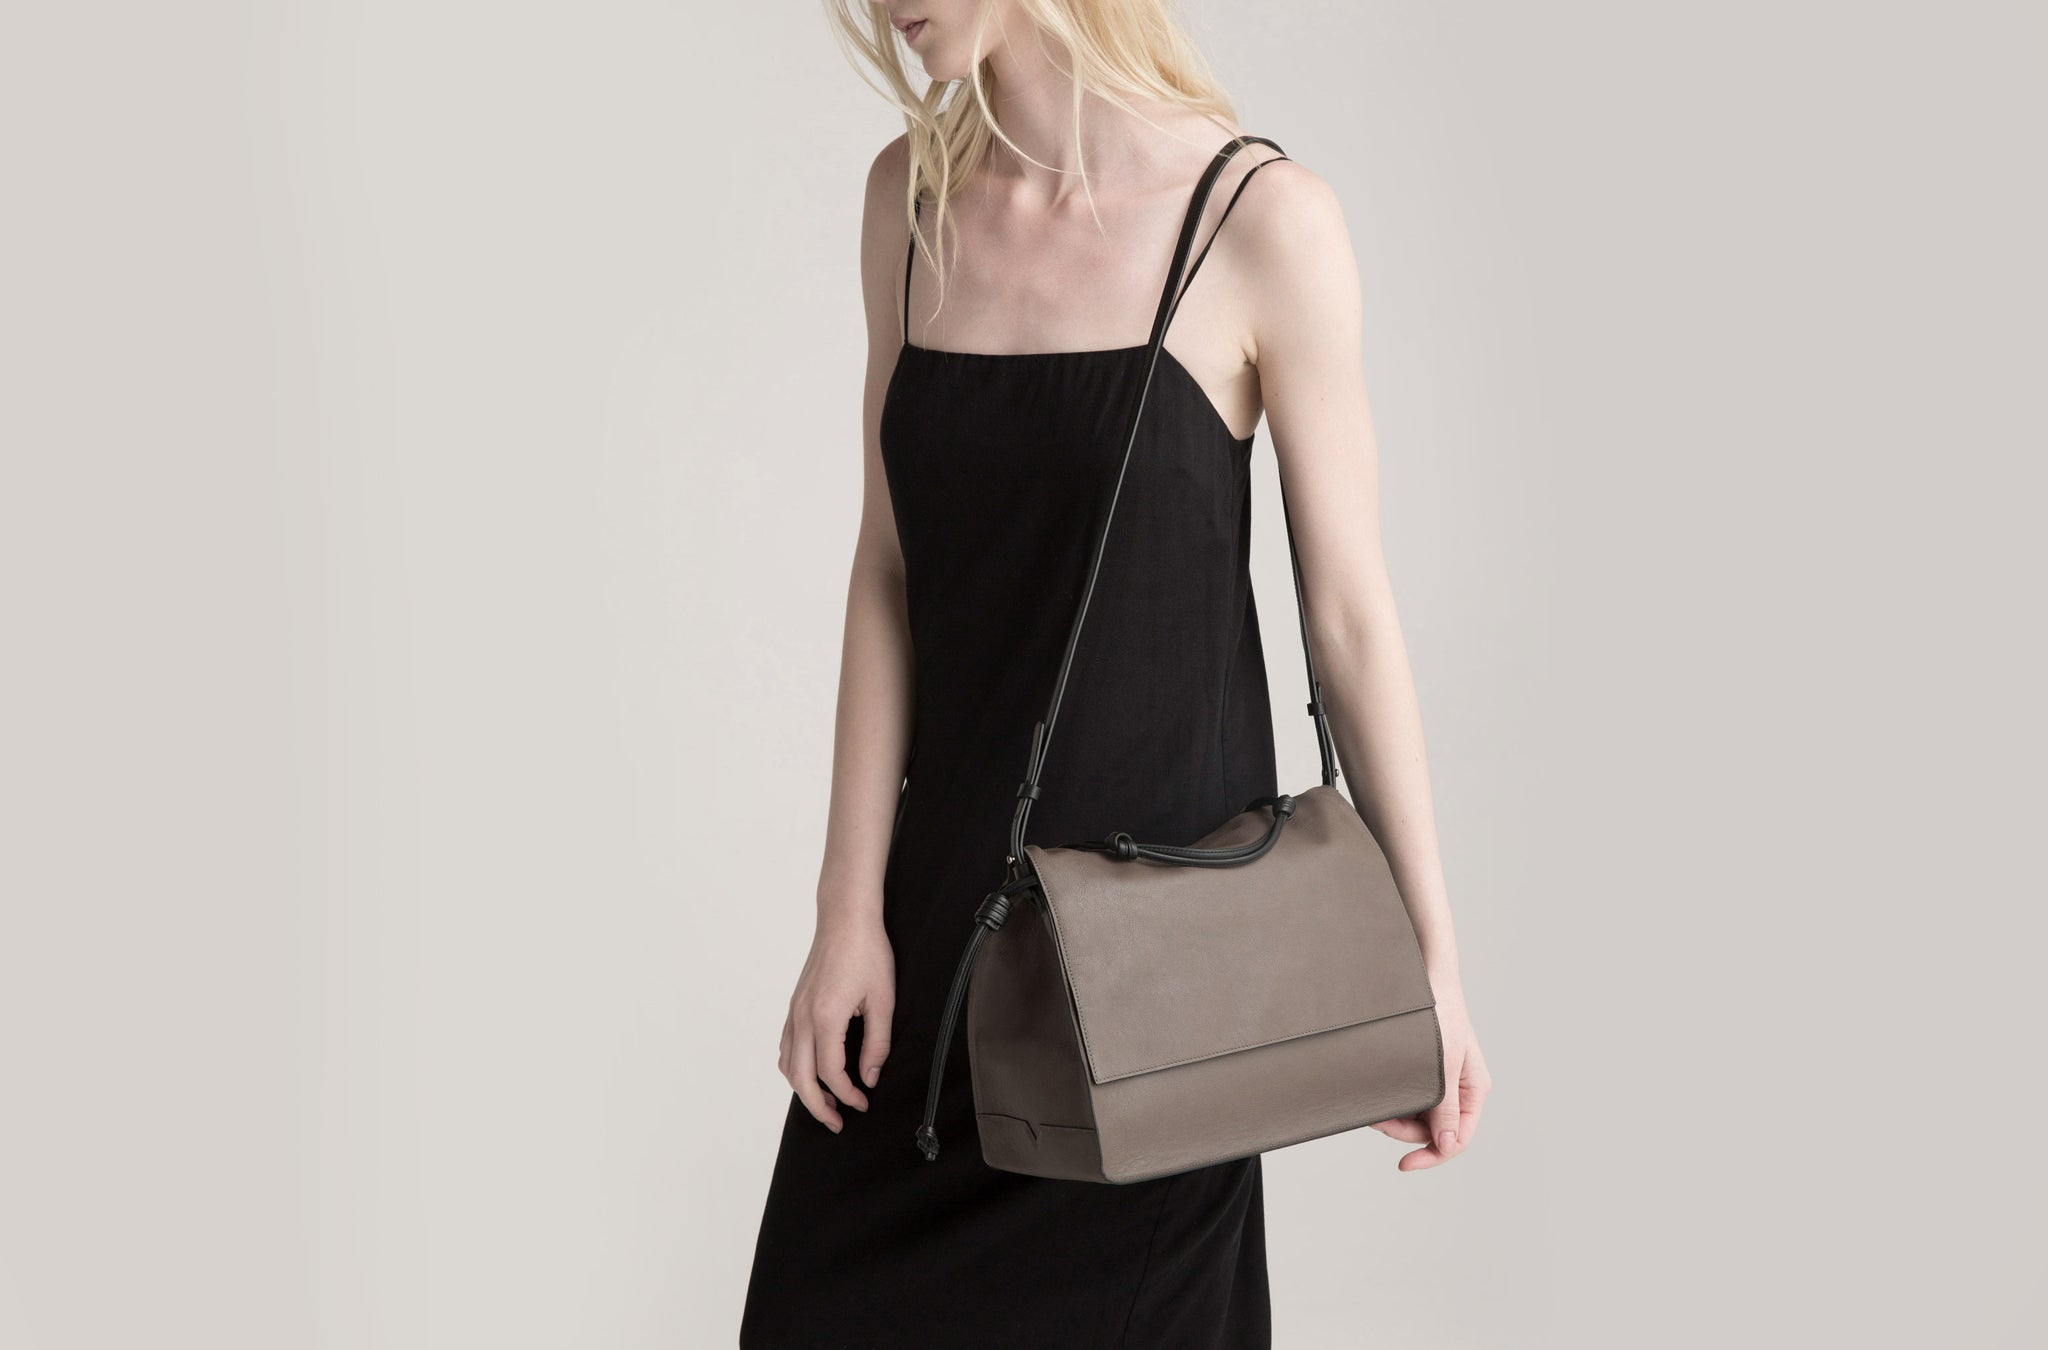 The Handheld in Technik-Leather in Taupe and Black